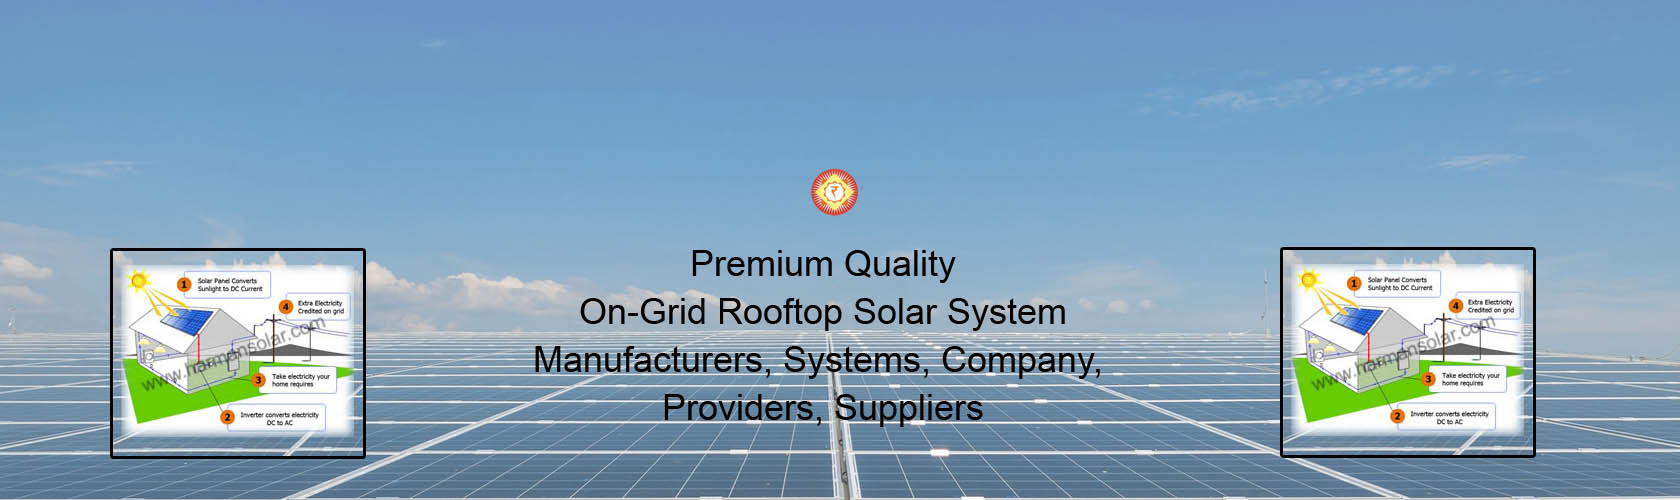 On-Grid Rooftop Solar System